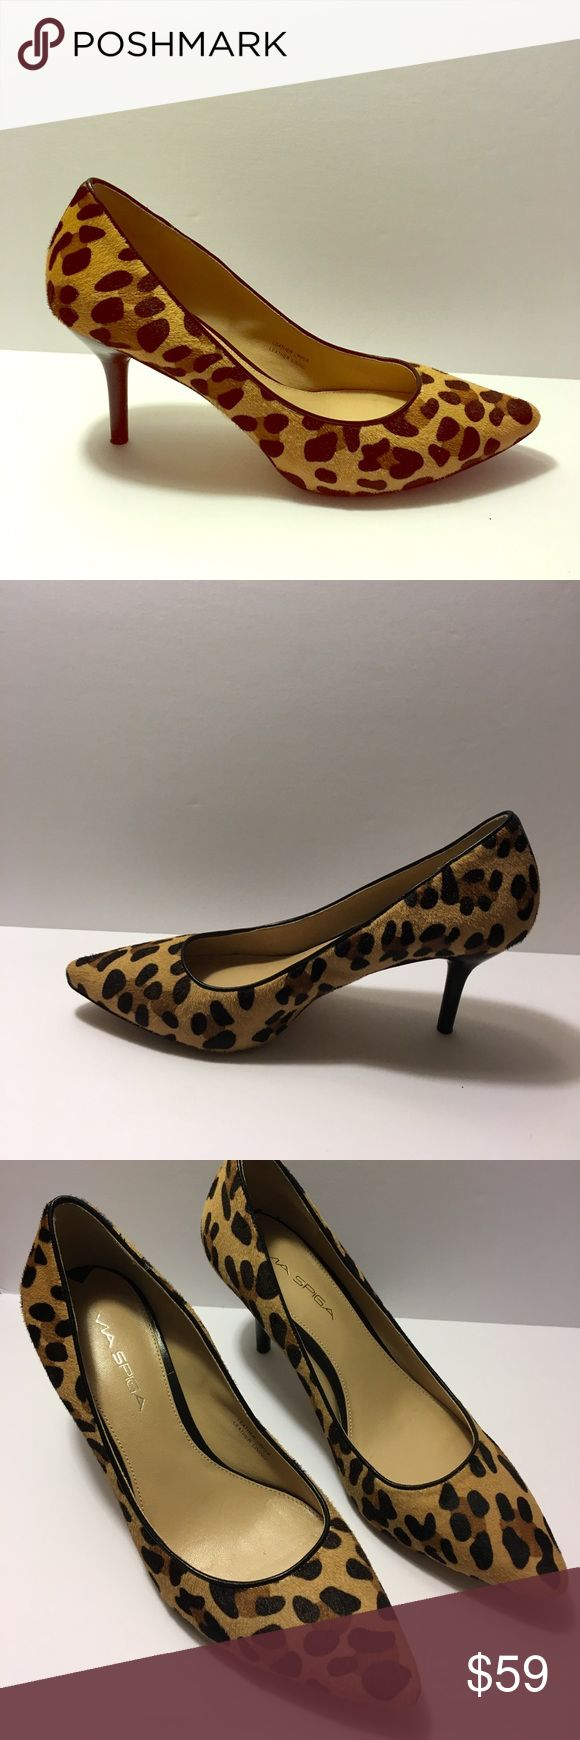 Via Spiga Leopard Pump Size 8M Excellent condition! 3 inch heels. Leather strip in the back. Via Spiga Shoes Heels